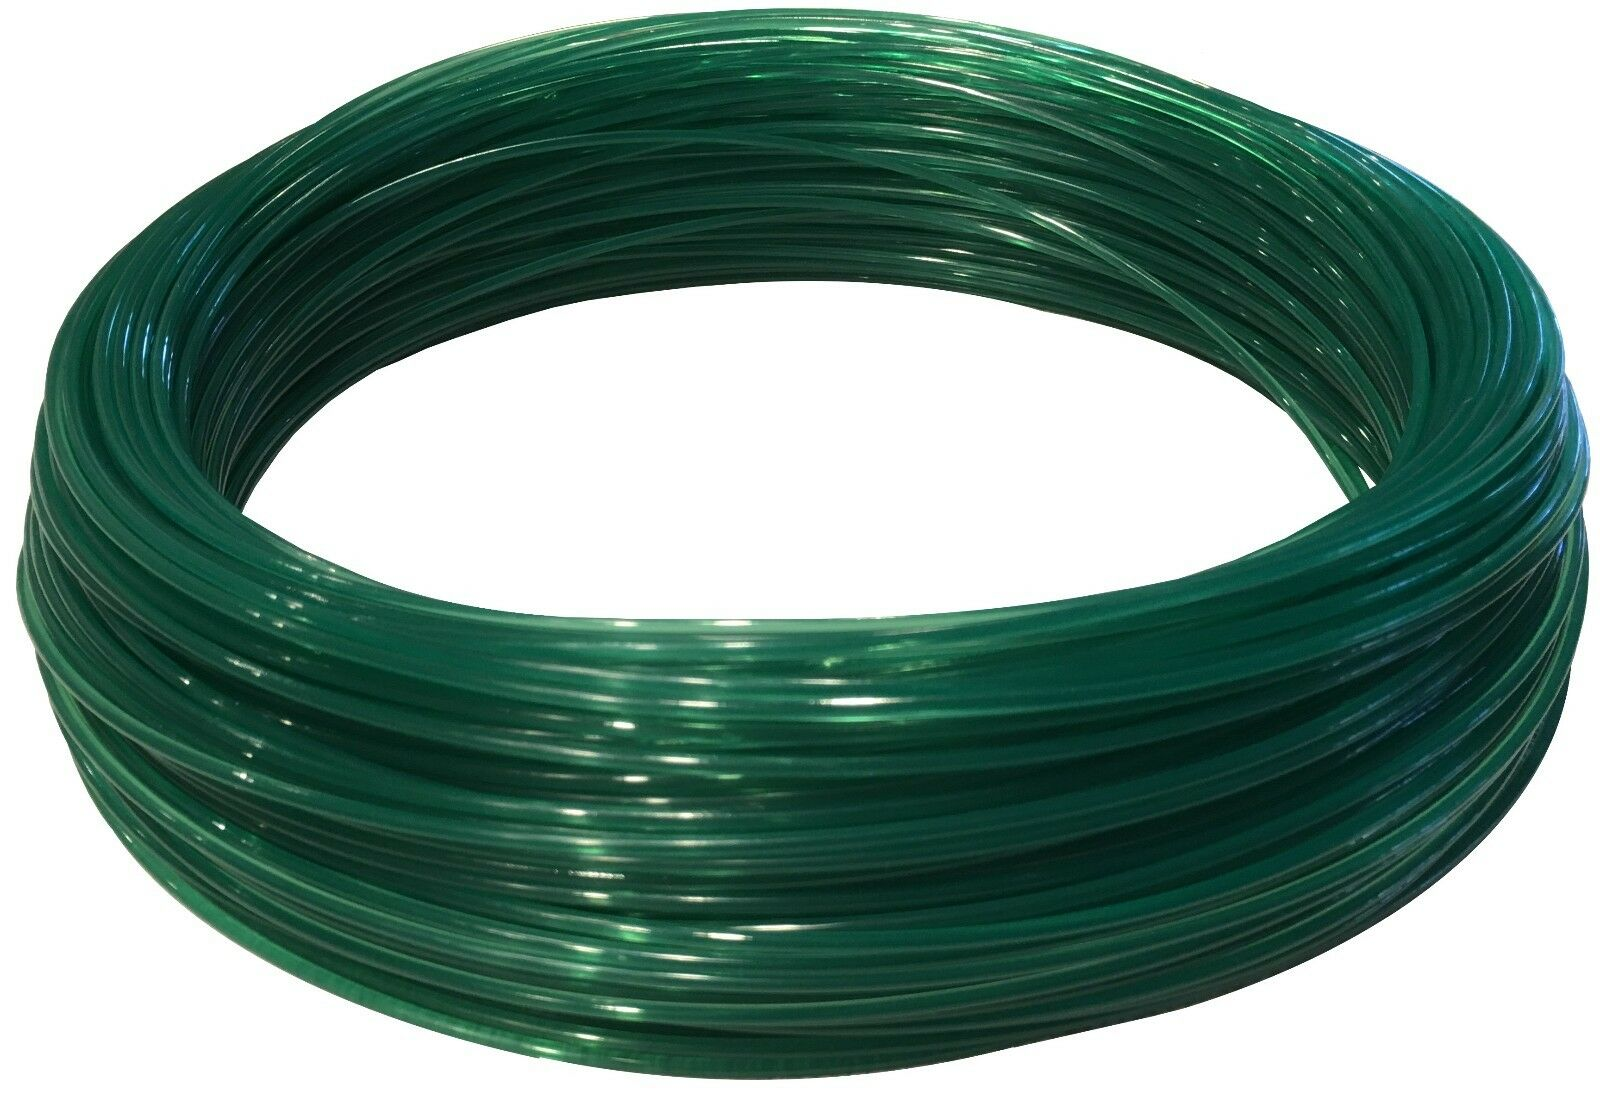 600lb 2.5mm Green Monofilament Leader, Speargun Line 300ft(90m), Made in USA